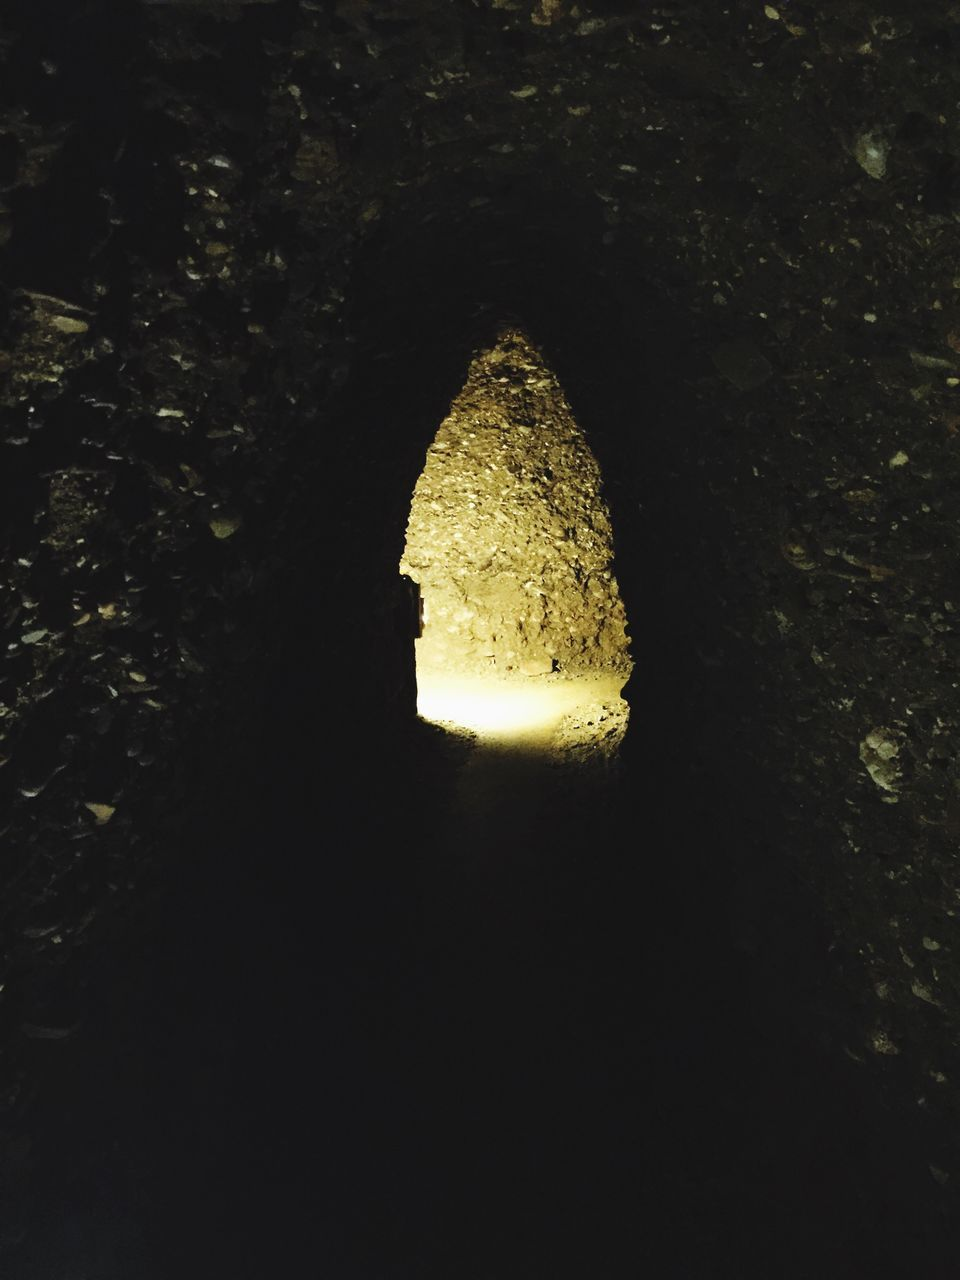 night, no people, illuminated, outdoors, yellow, nature, cave, water, beauty in nature, close-up